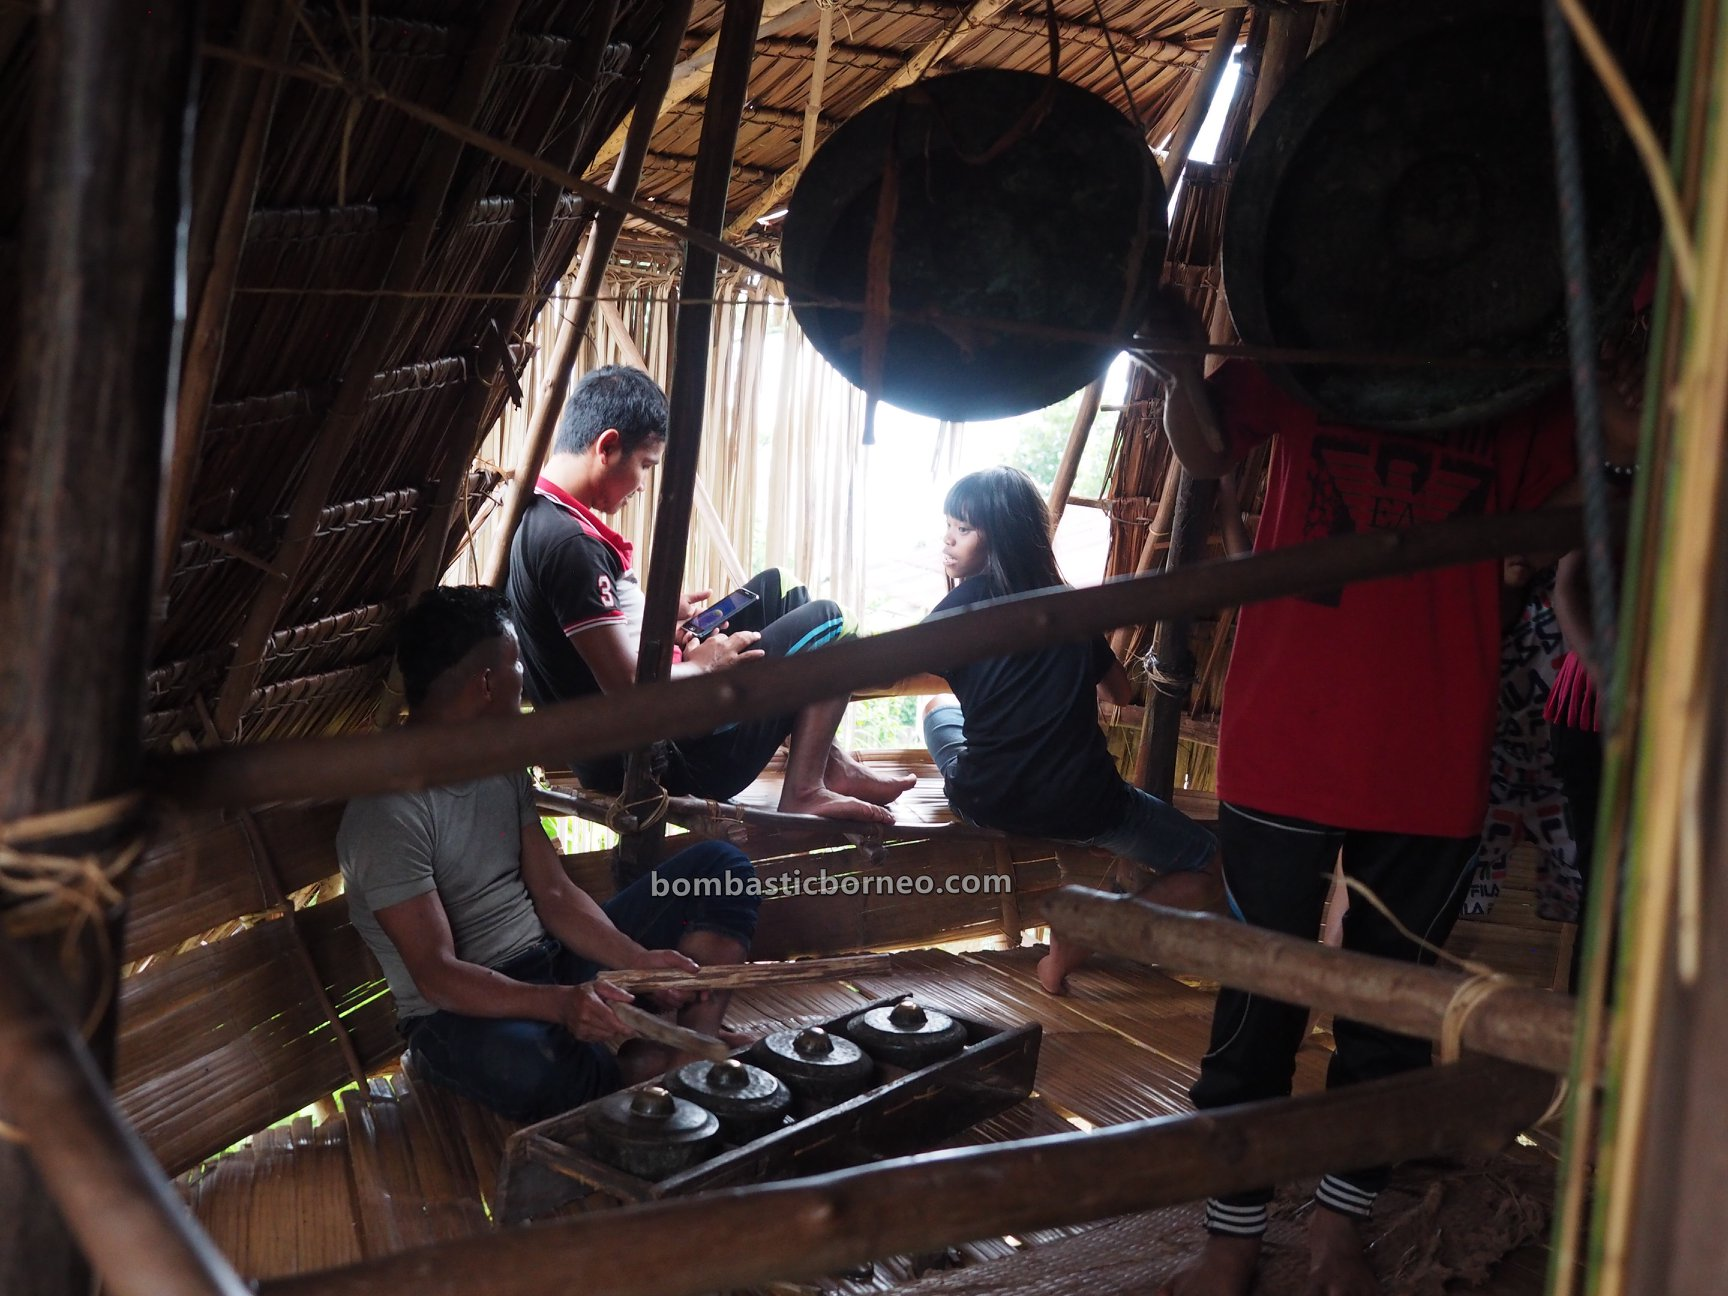 traditional, culture, baruk, skull house, Indonesia, Bengkayang, Siding, Gawai harvest festival, native, tribal, Tourism, travel guide, Borneo, 印尼土著部落, 西加里曼丹丰收节日, 婆罗洲达雅传统文化,